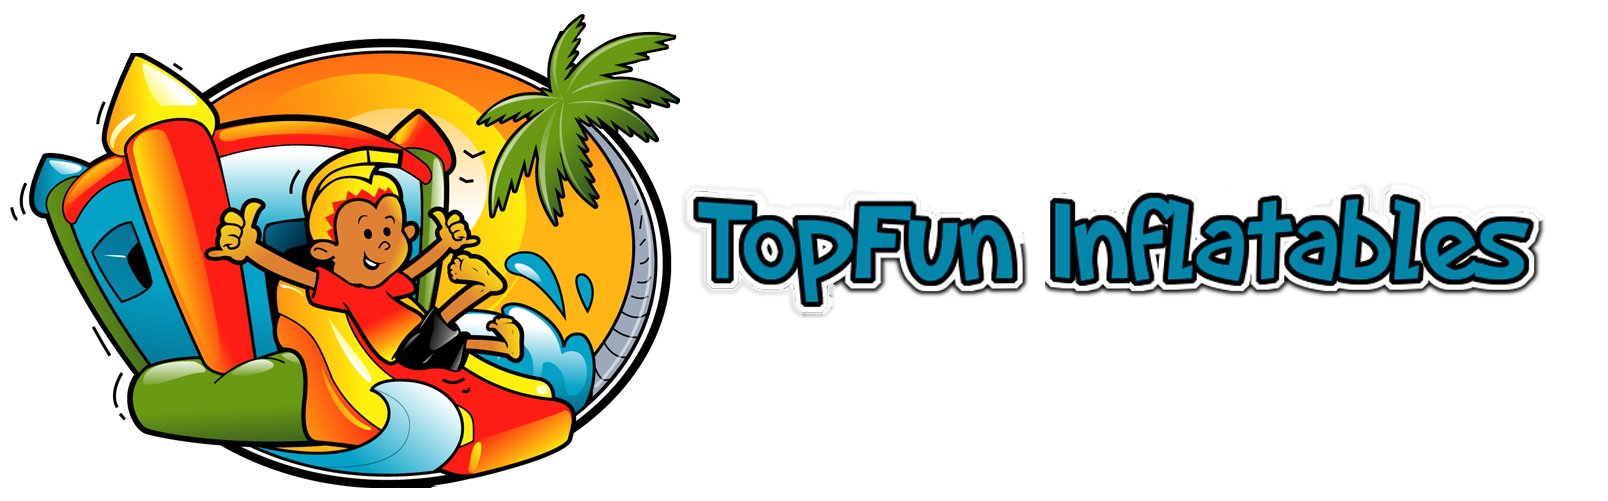 TopFun Entertainment Lebanon